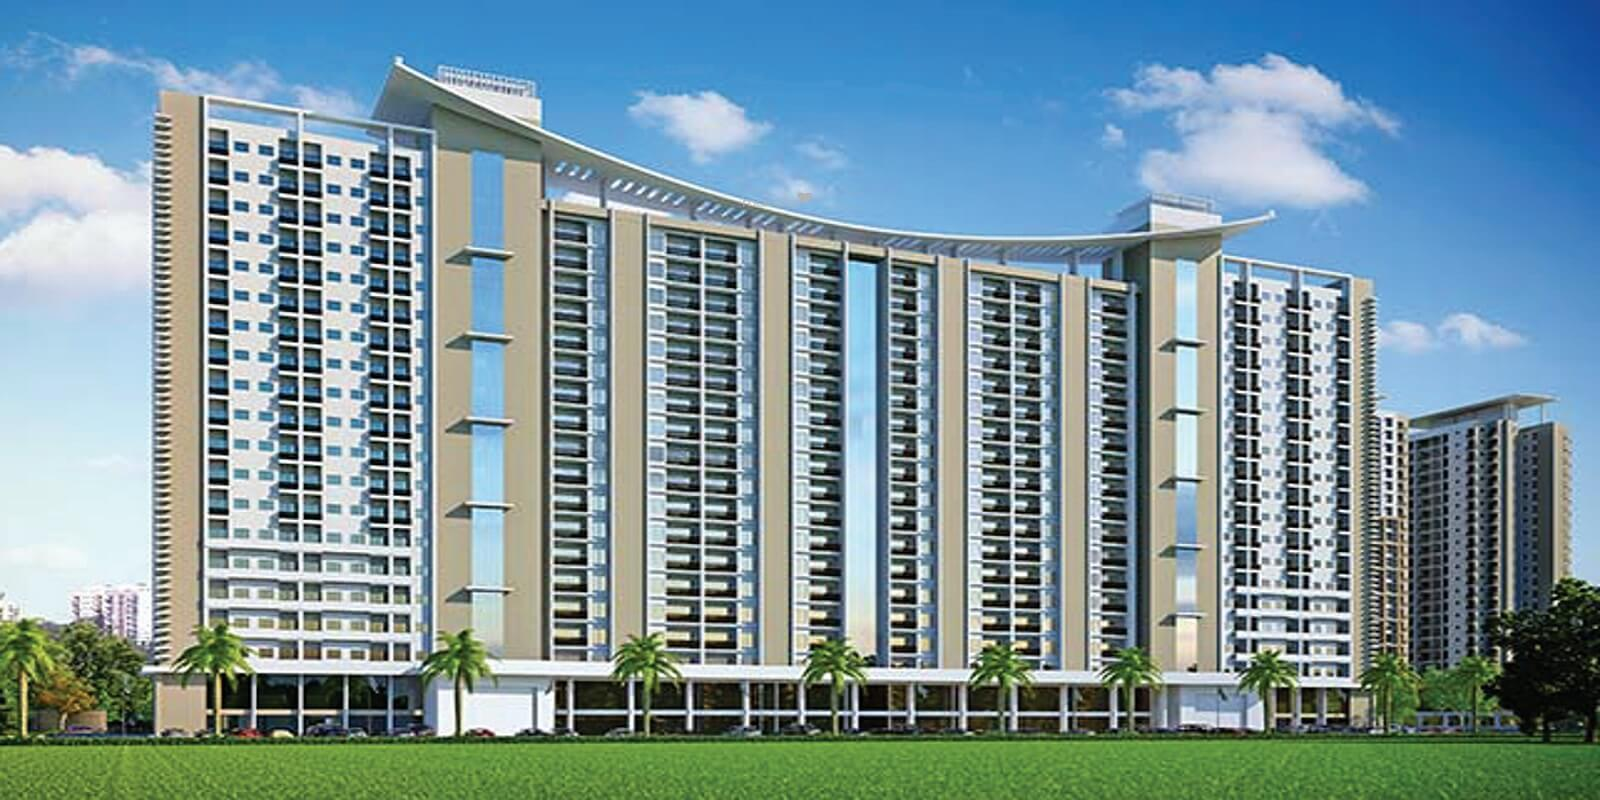 paarth infrabuild nu project large image1